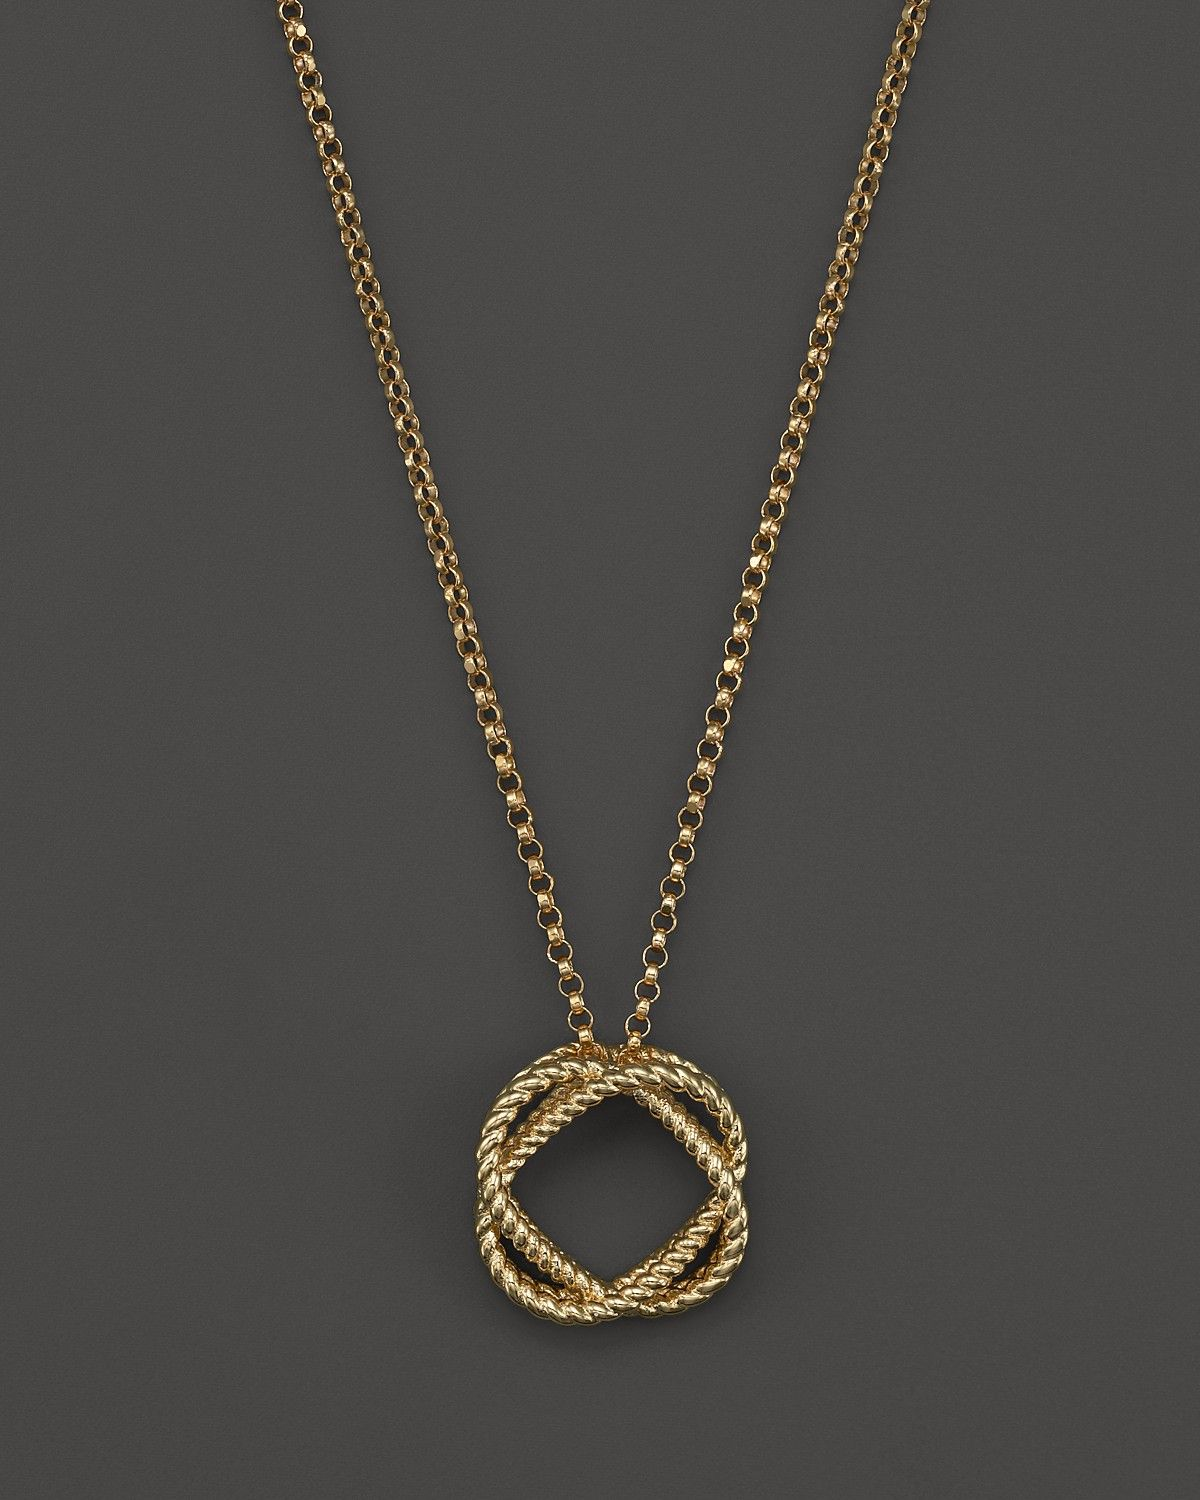 6a02dad811f 18K Yellow Gold Small Twisted Circle Pendant Necklace, 16 | Fine ...